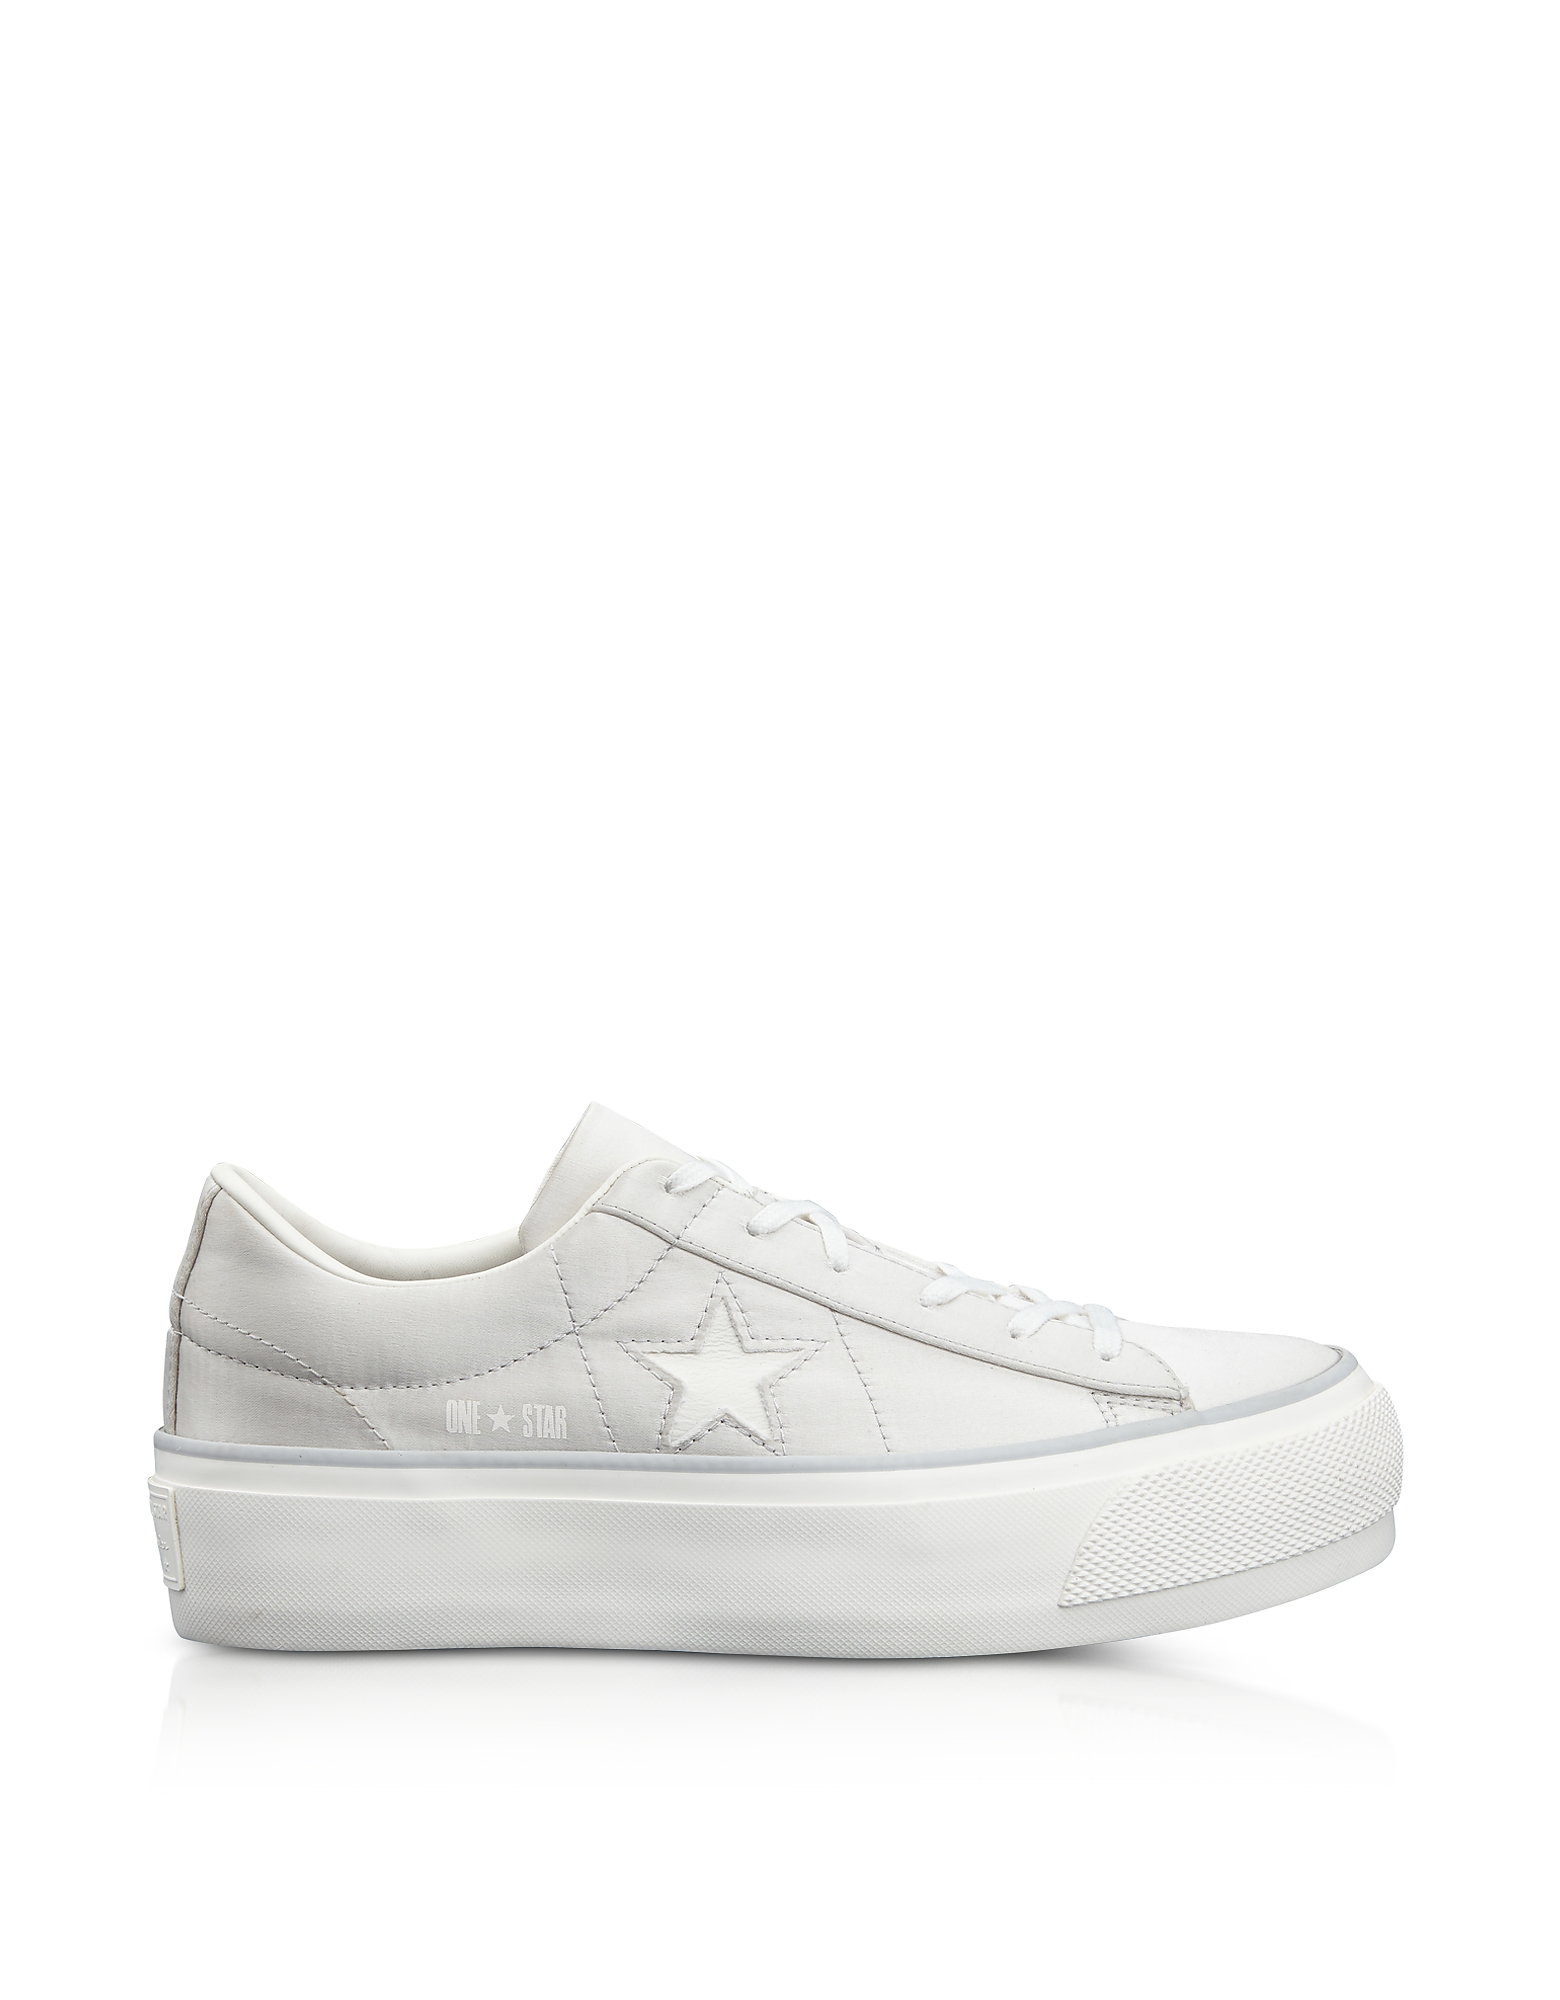 Converse Limited Edition Shoes, One Star Pearl Gray Satin Flatform Sneakers